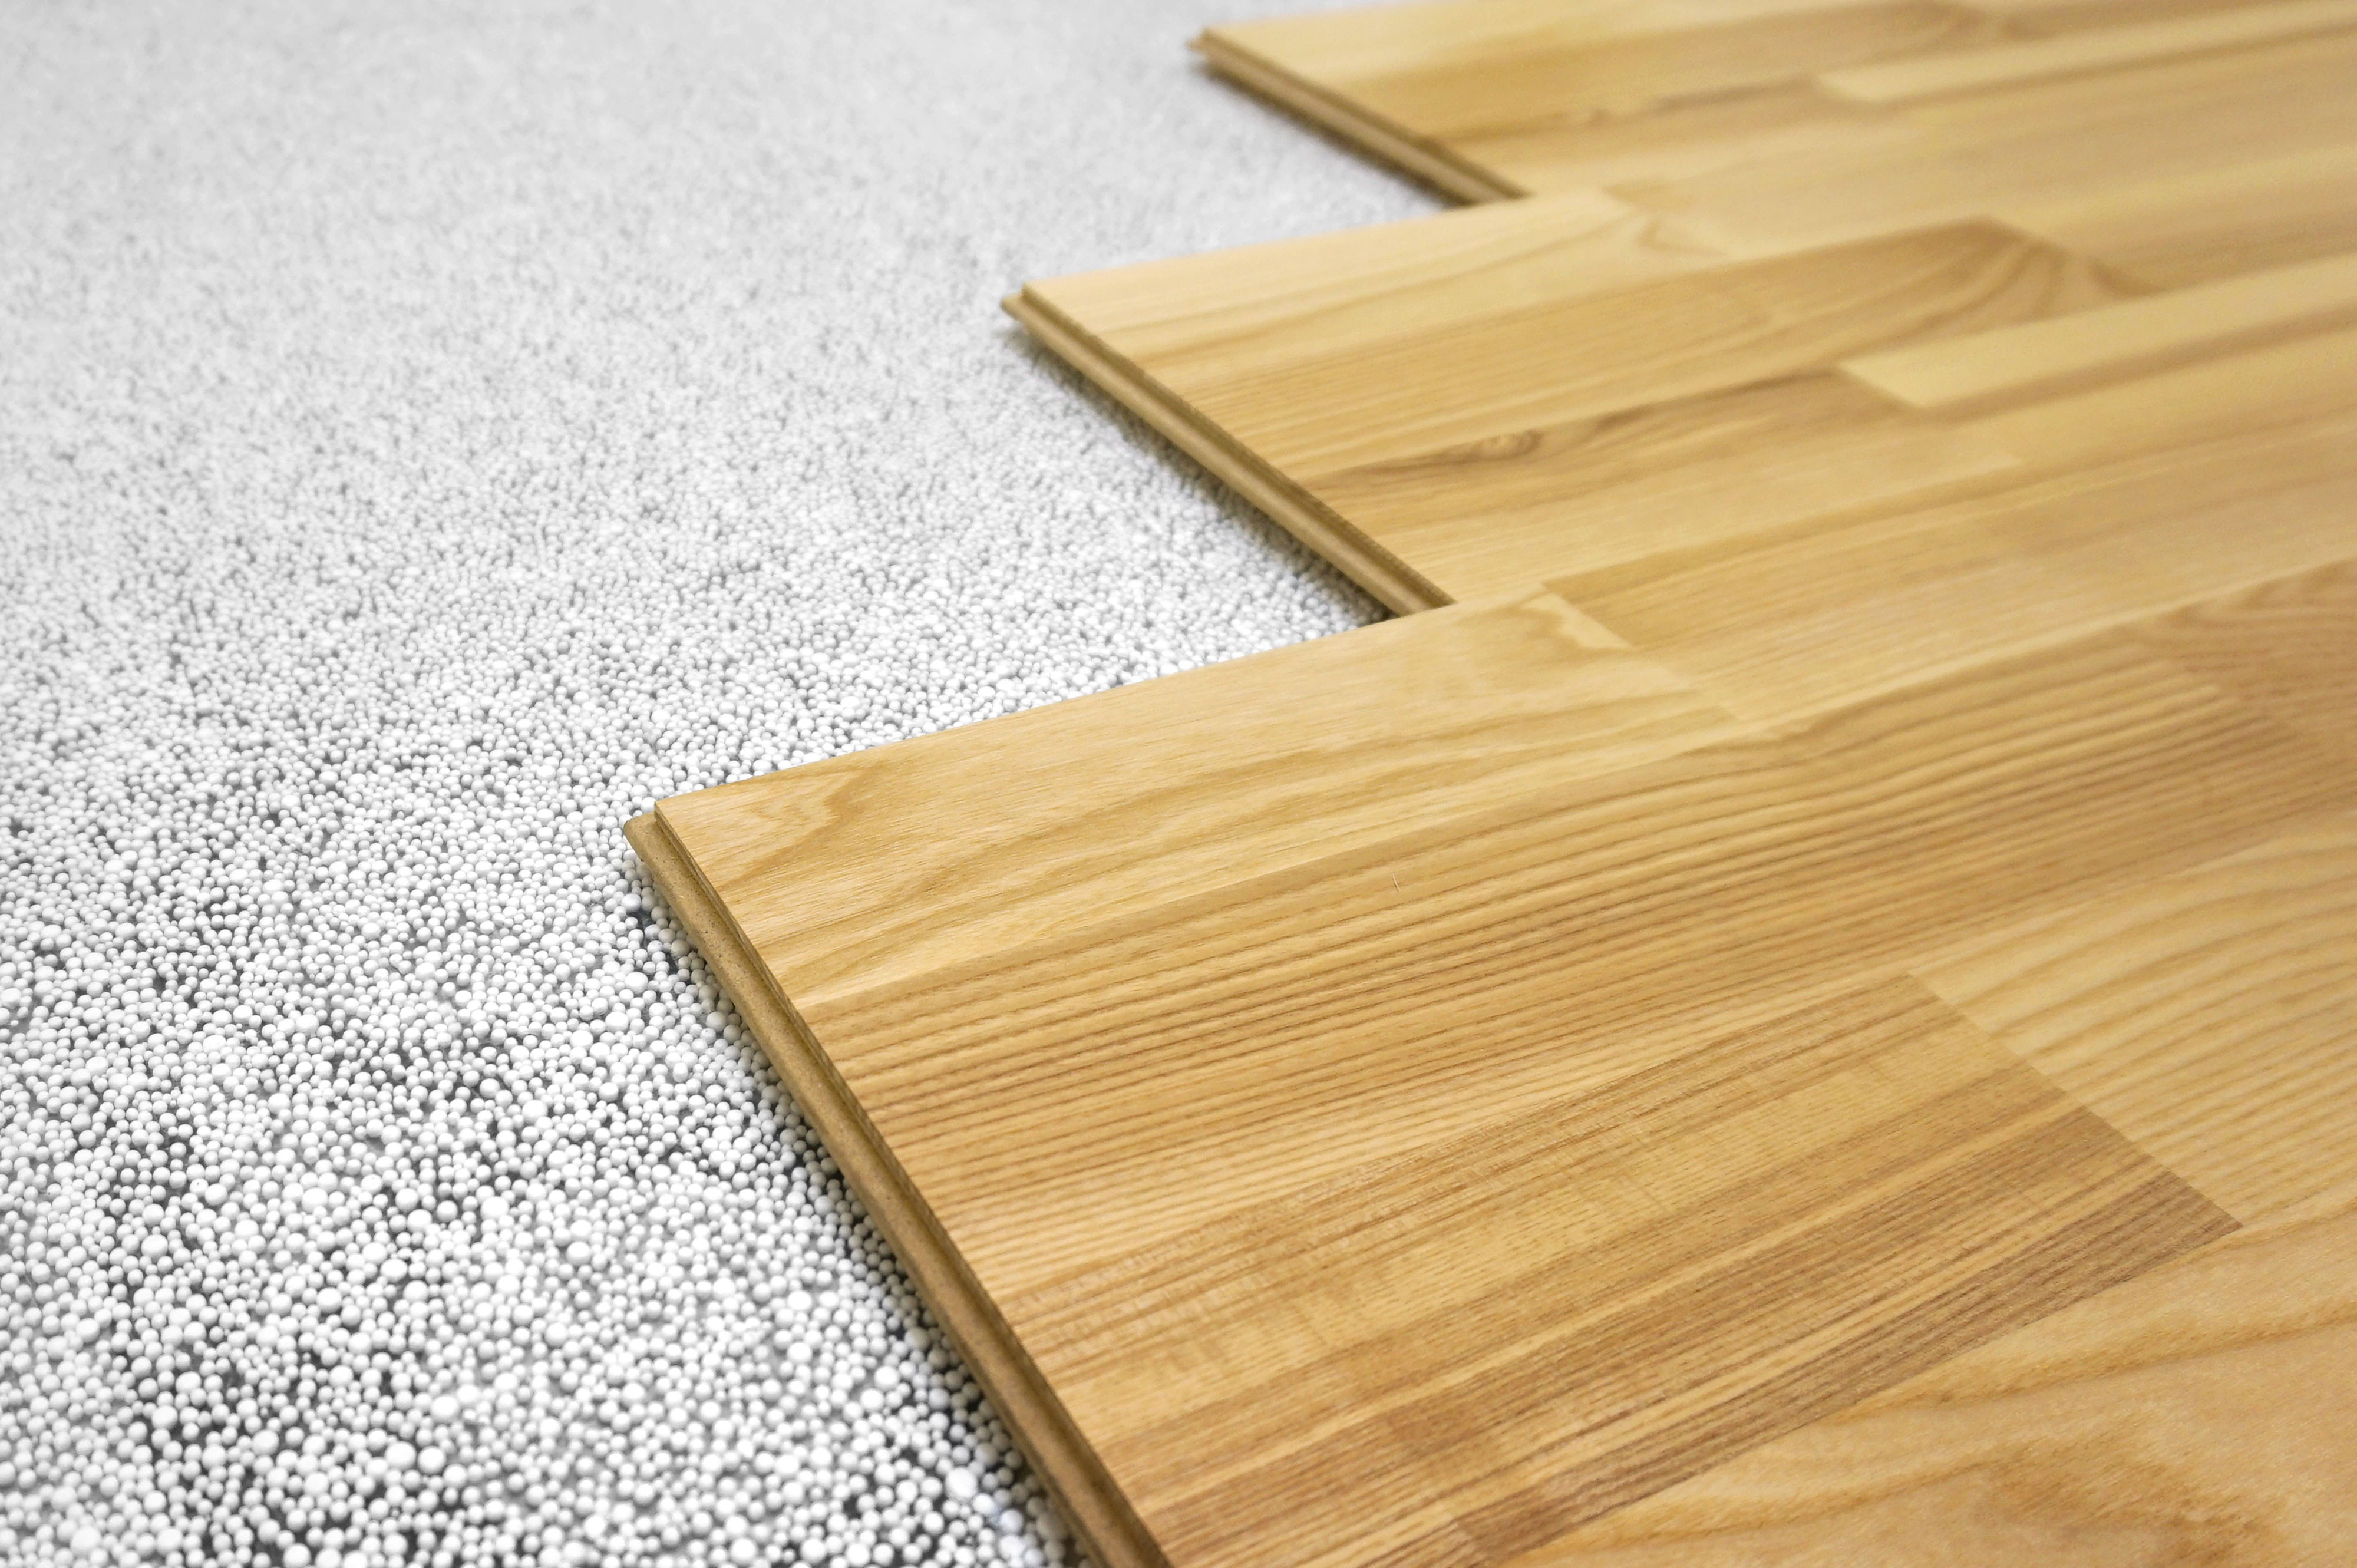 hardwood flooring duluth mn of what does it cost to install laminate flooring angies list in wood lam